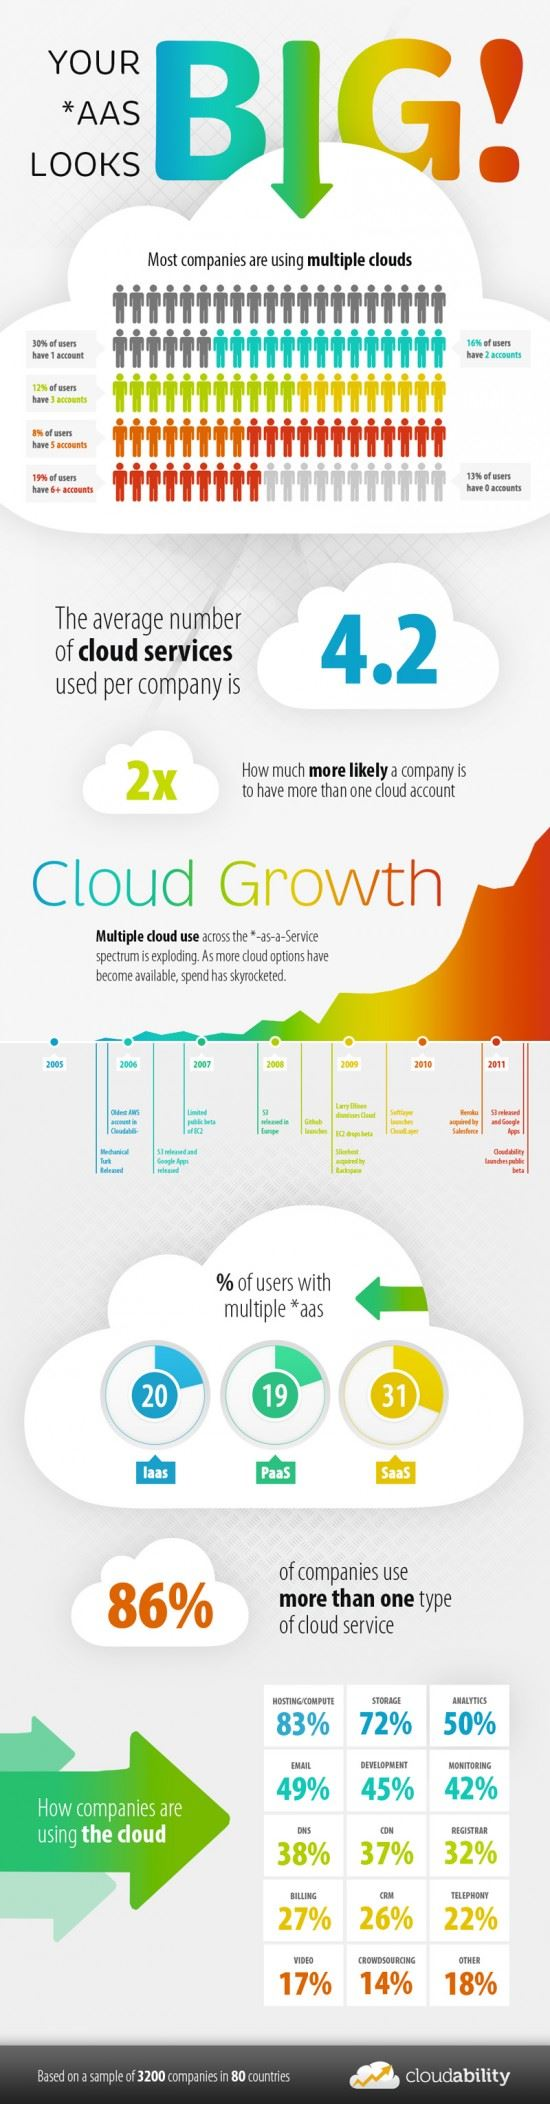 INFOGRAPHIC: The Growth of Cloud Computing